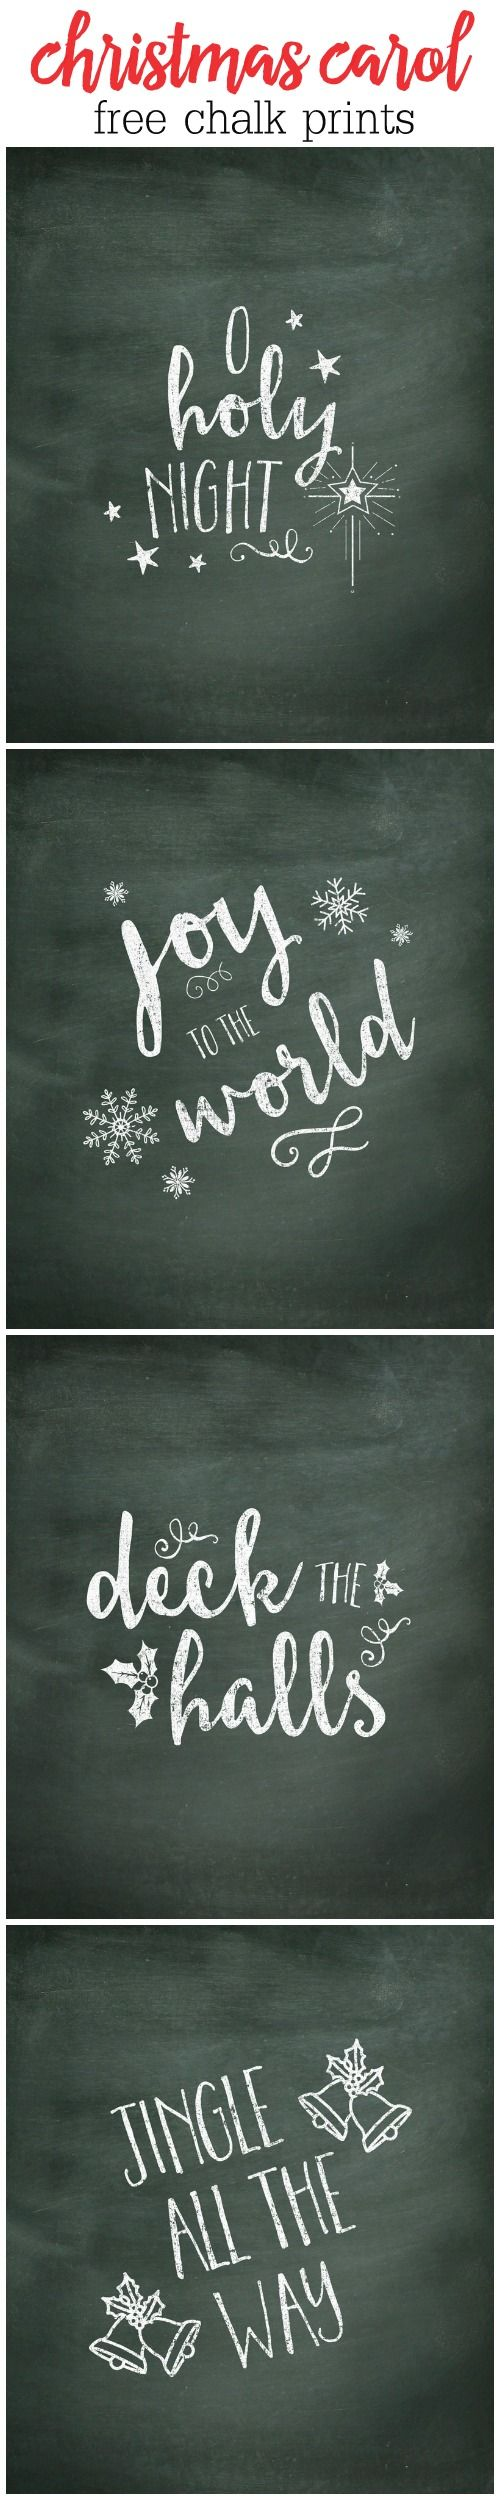 best a christmas carol quotes scrooge quotes christmas carol chalk prints 4 versions to choose from and display these